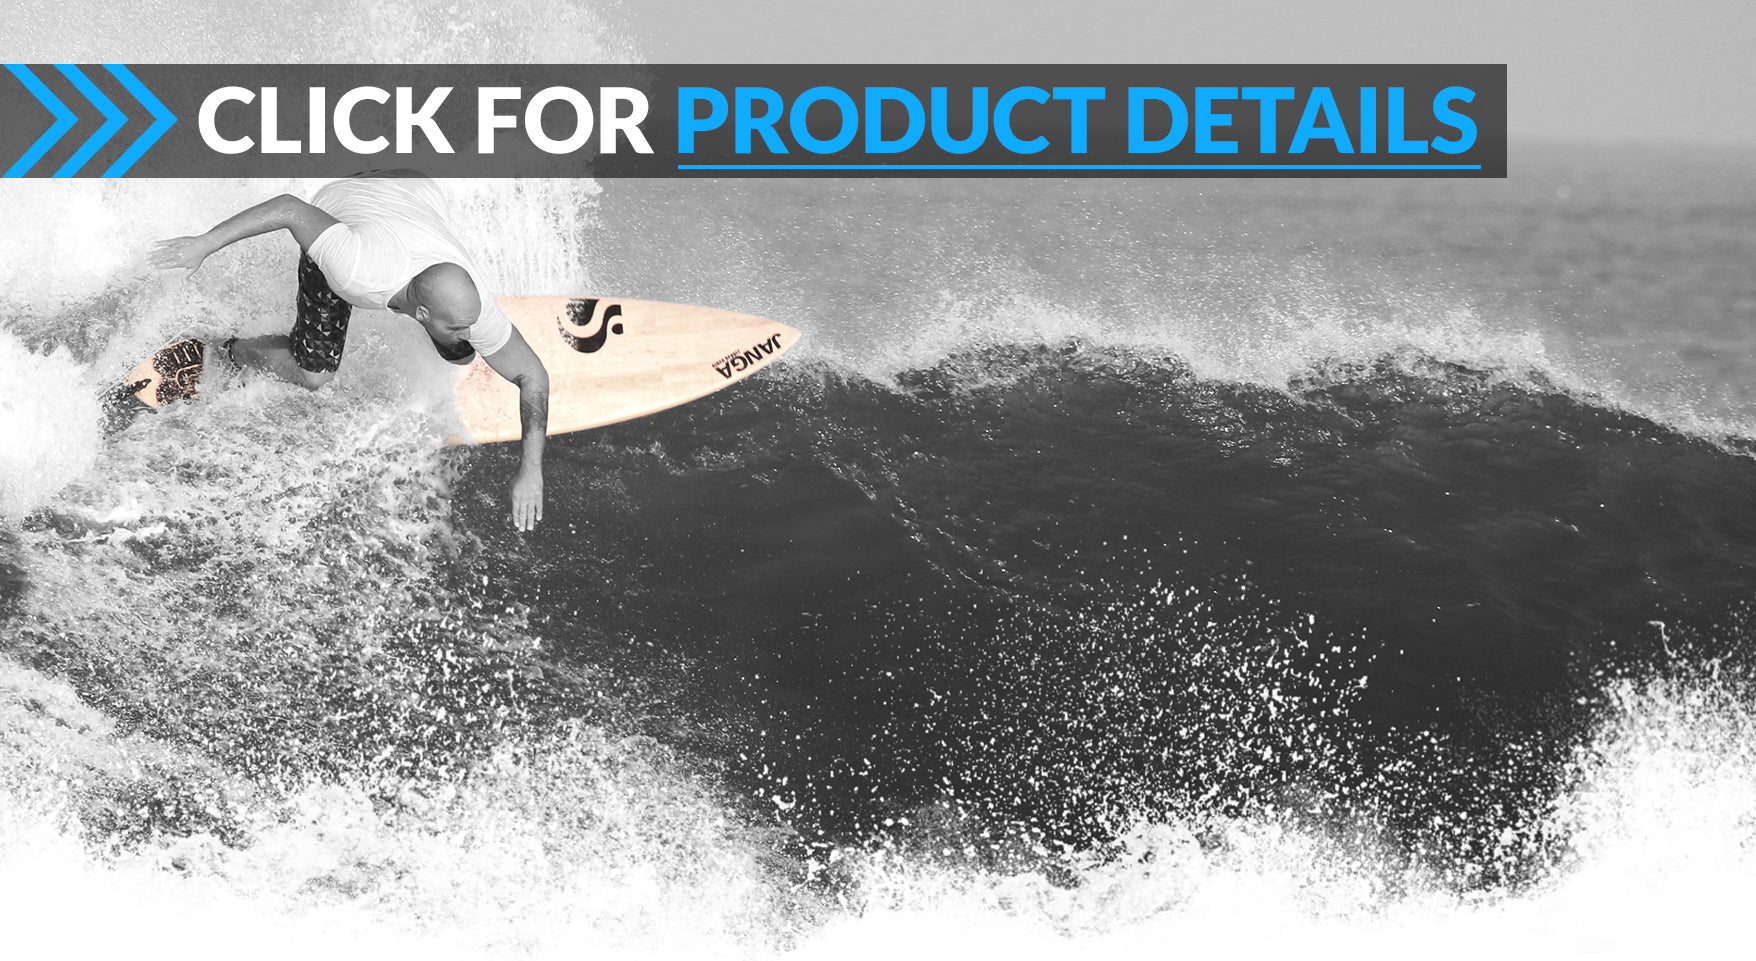 Surf Boards Product Details